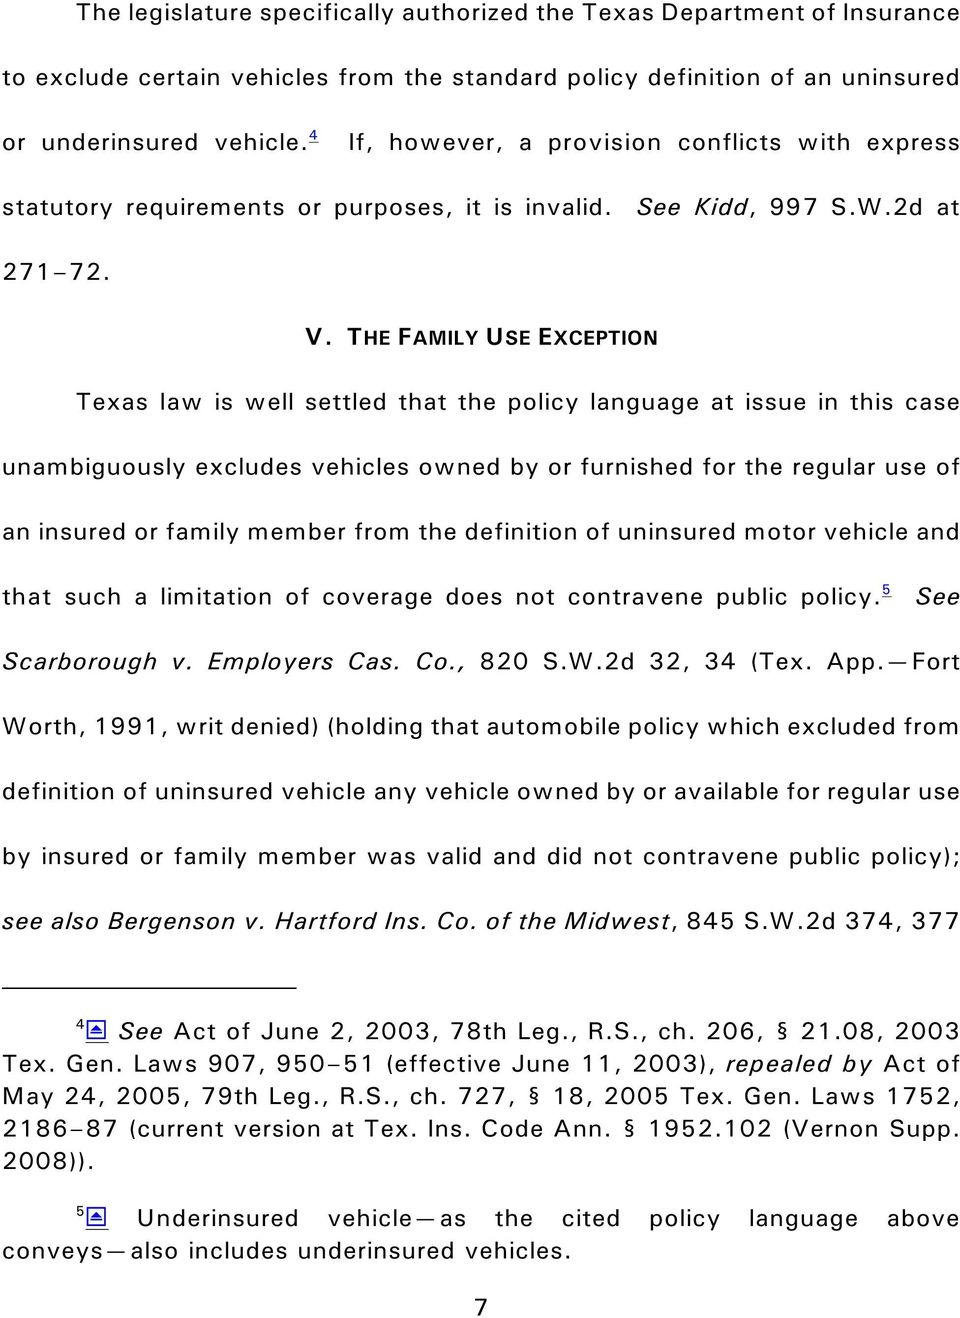 THE FAMILY USE EXCEPTION Texas law is well settled that the policy language at issue in this case unambiguously excludes vehicles owned by or furnished for the regular use of an insured or family